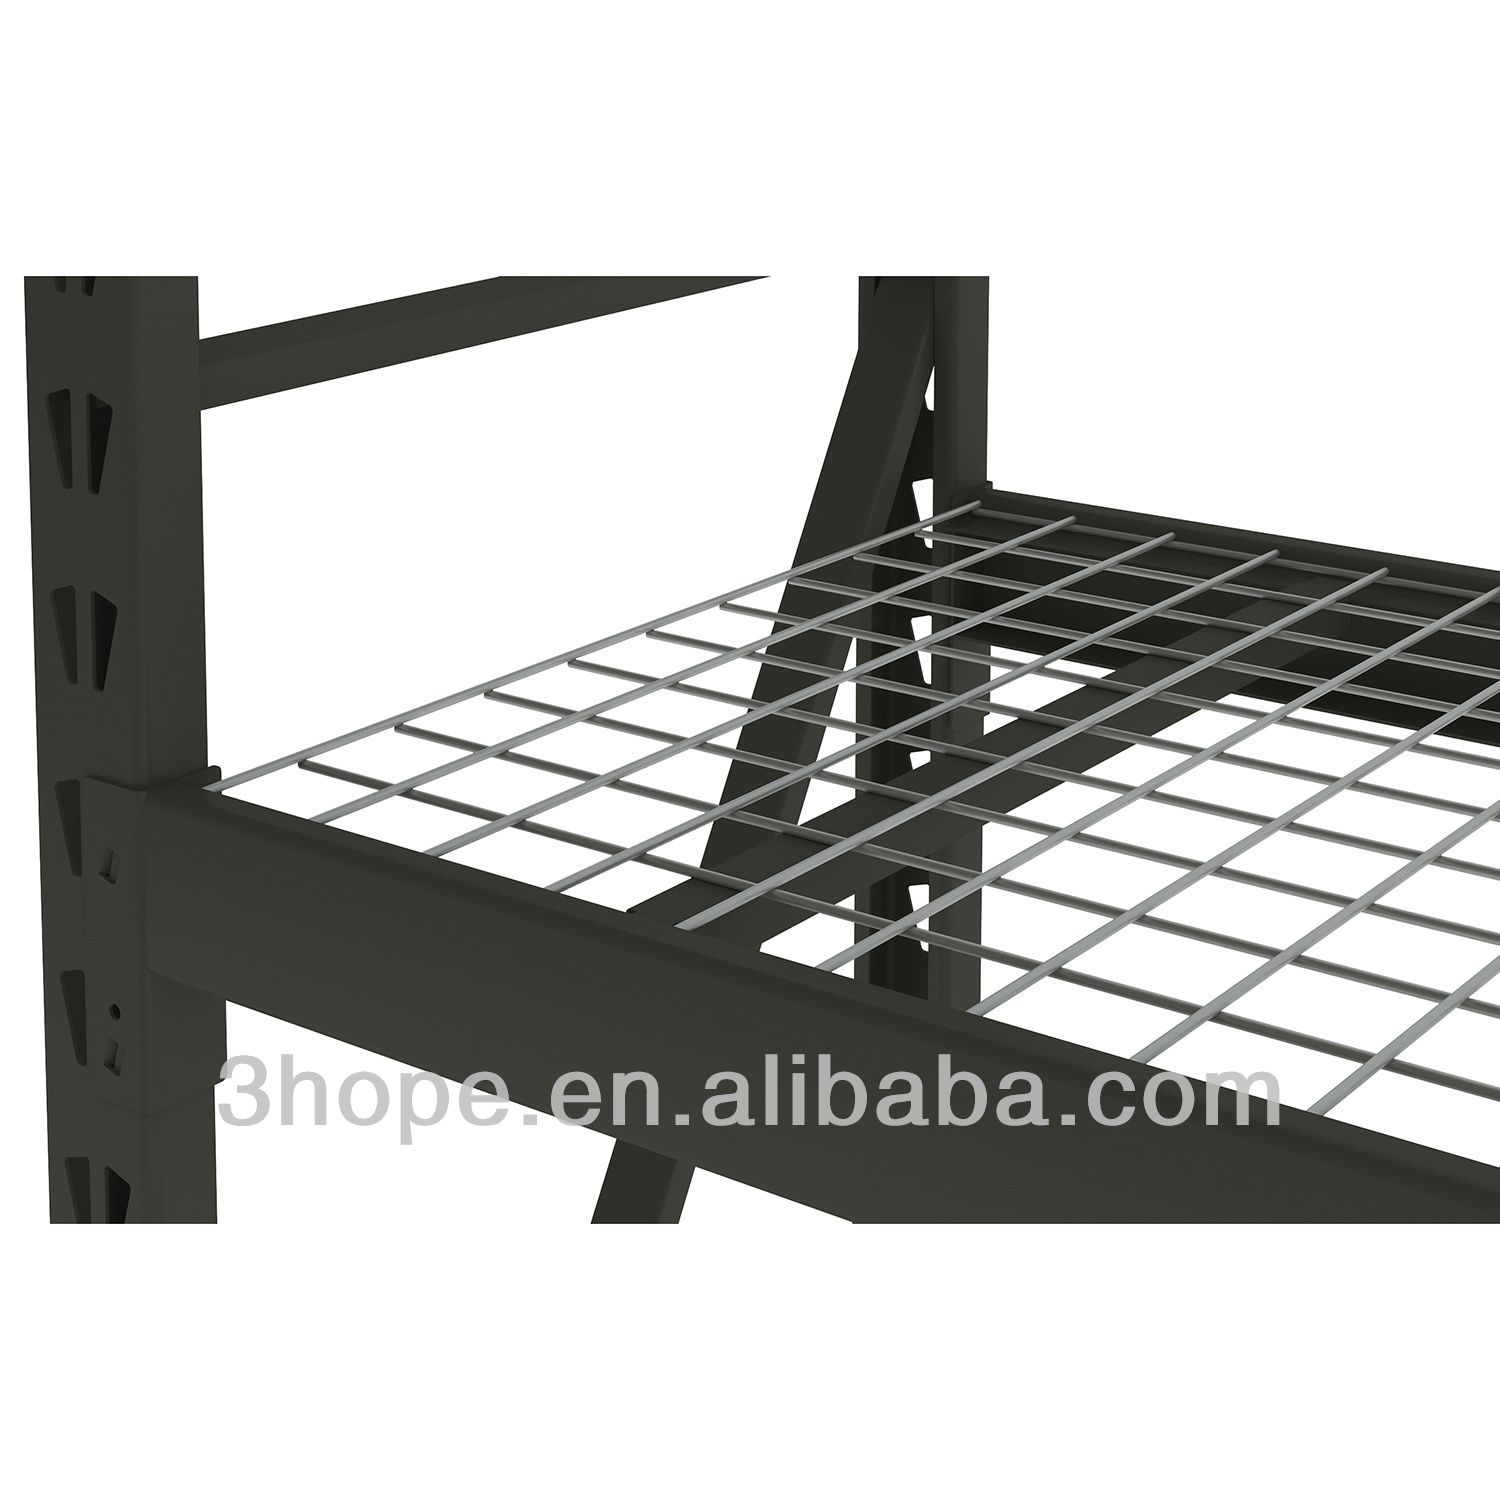 racks mhe shelving duty pallet steel handling warehouse lockers new industrial heavy htm material used equipment storage conveyor bulk rack